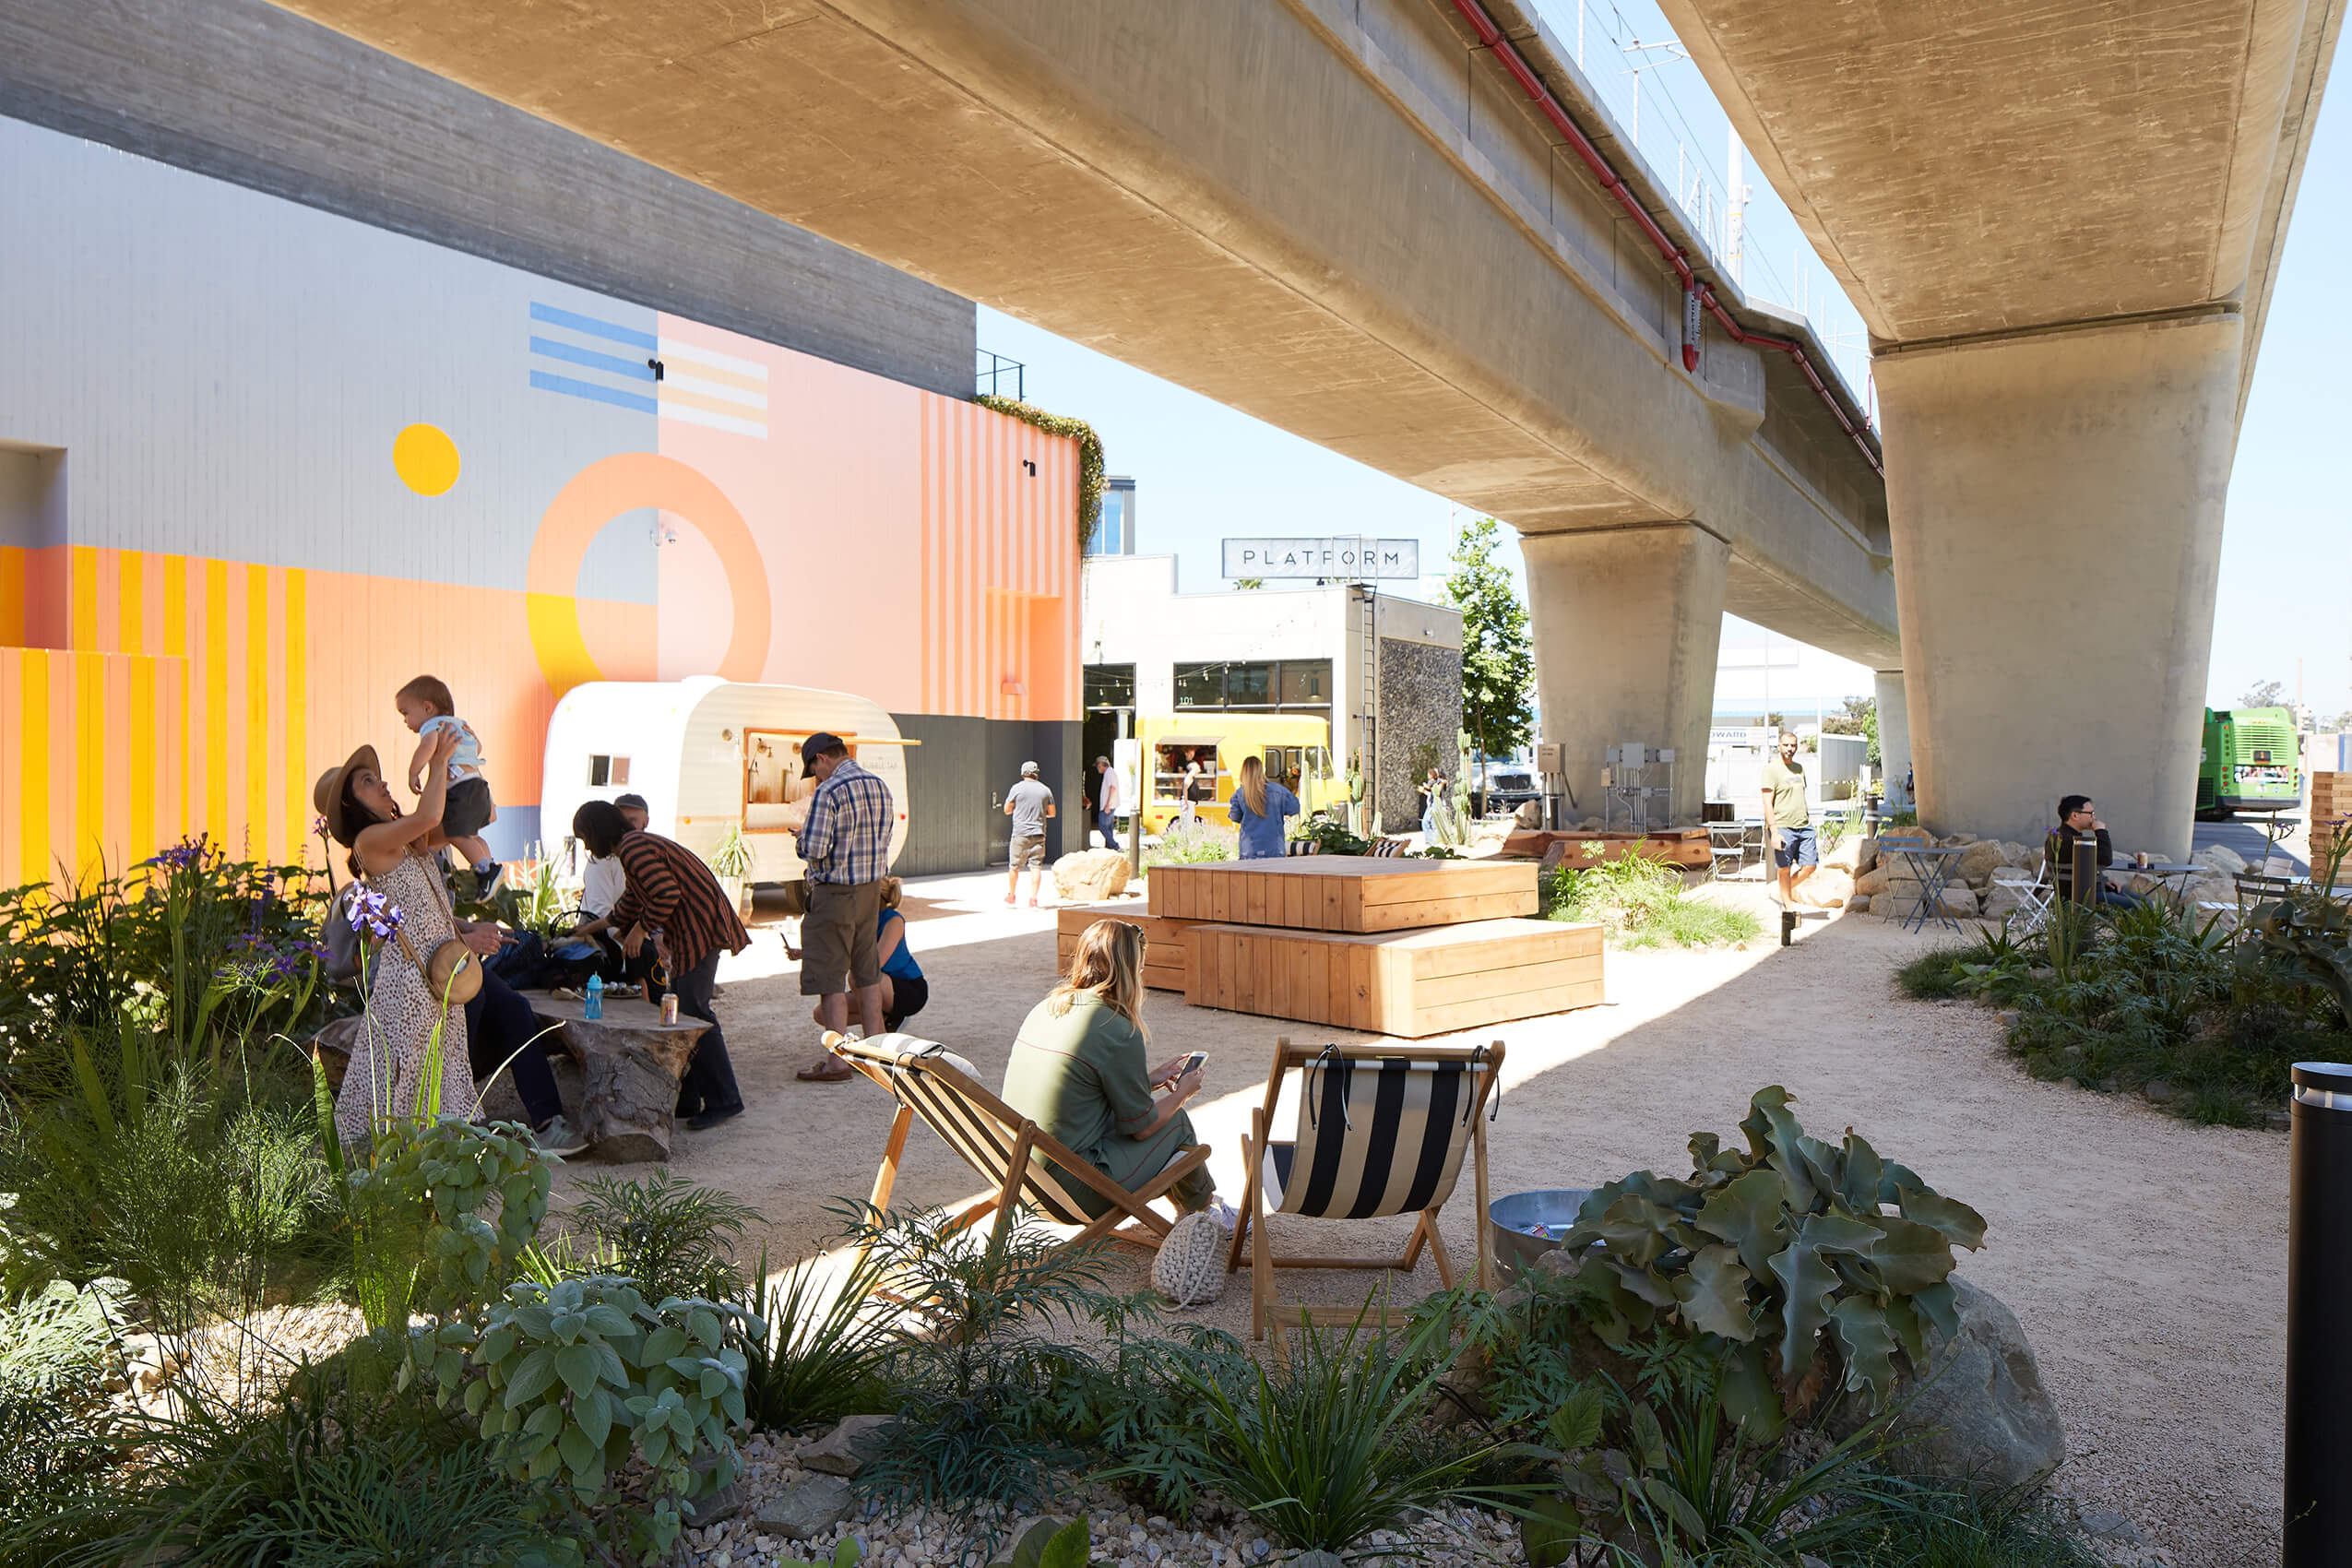 People in an underpass park